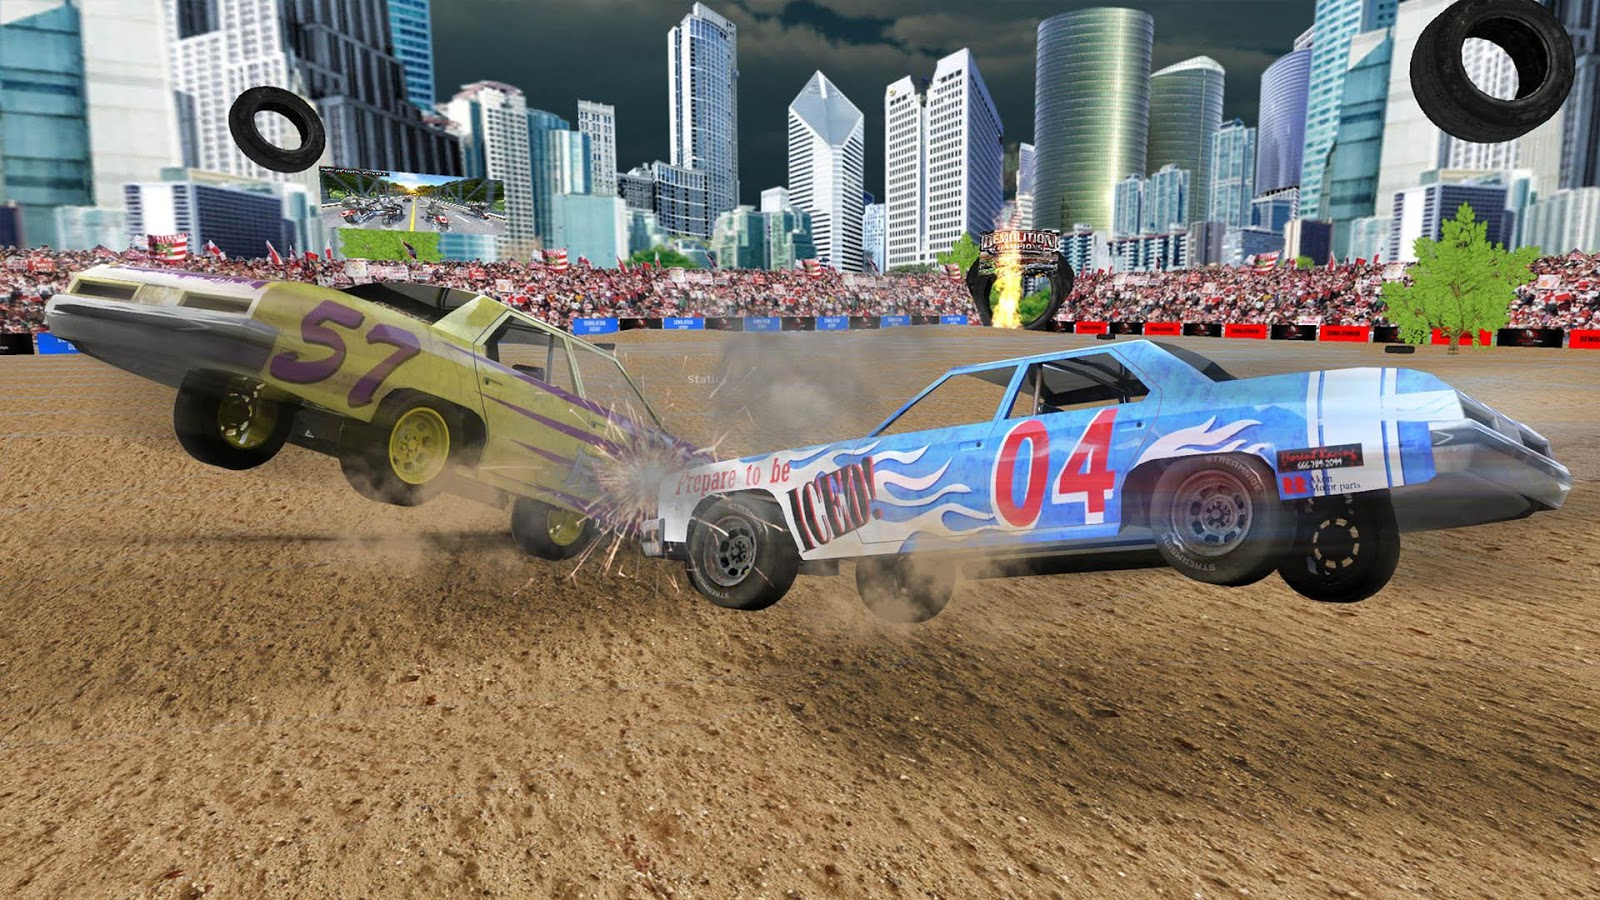 Demolition Derby Car Racing